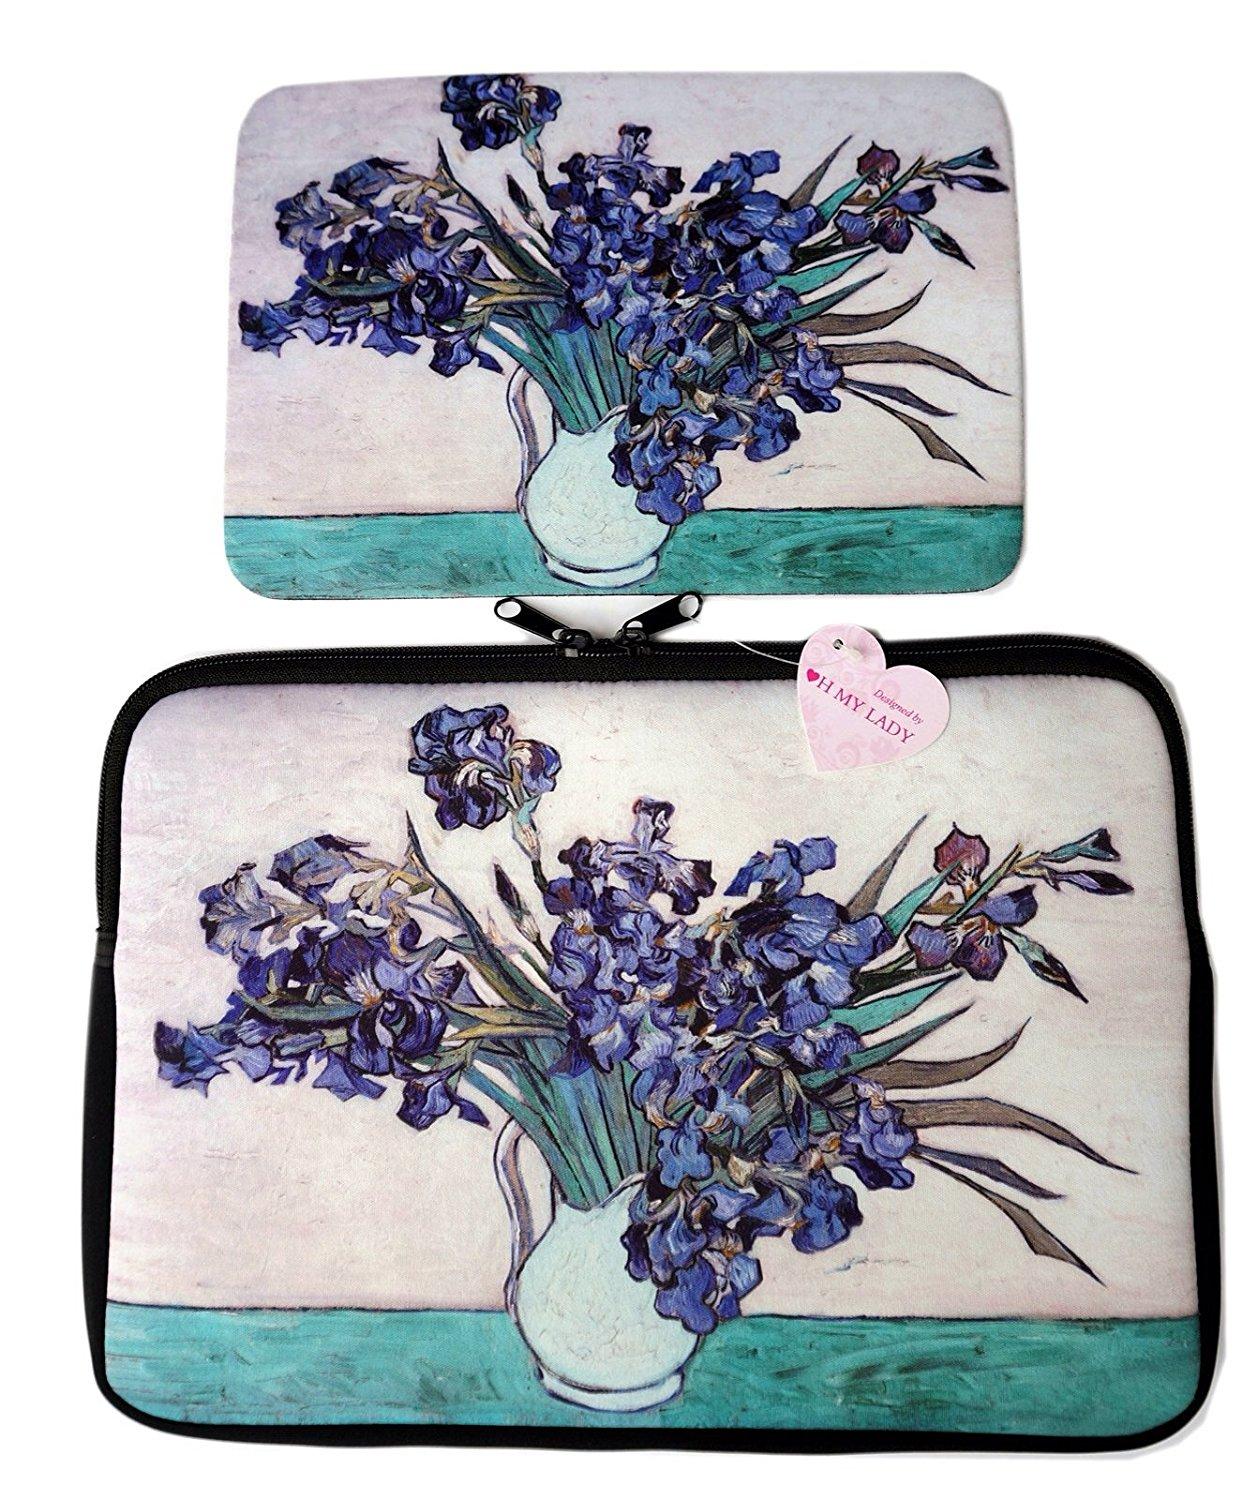 """Oh My Lady* 11-11.6"""" inch Van Gogh's Masterpiece (Irises) Oil Painting Neoprene Laptop Case/Sleeve/Bag/Pouch/Cover – Available in 7 Patterns"""